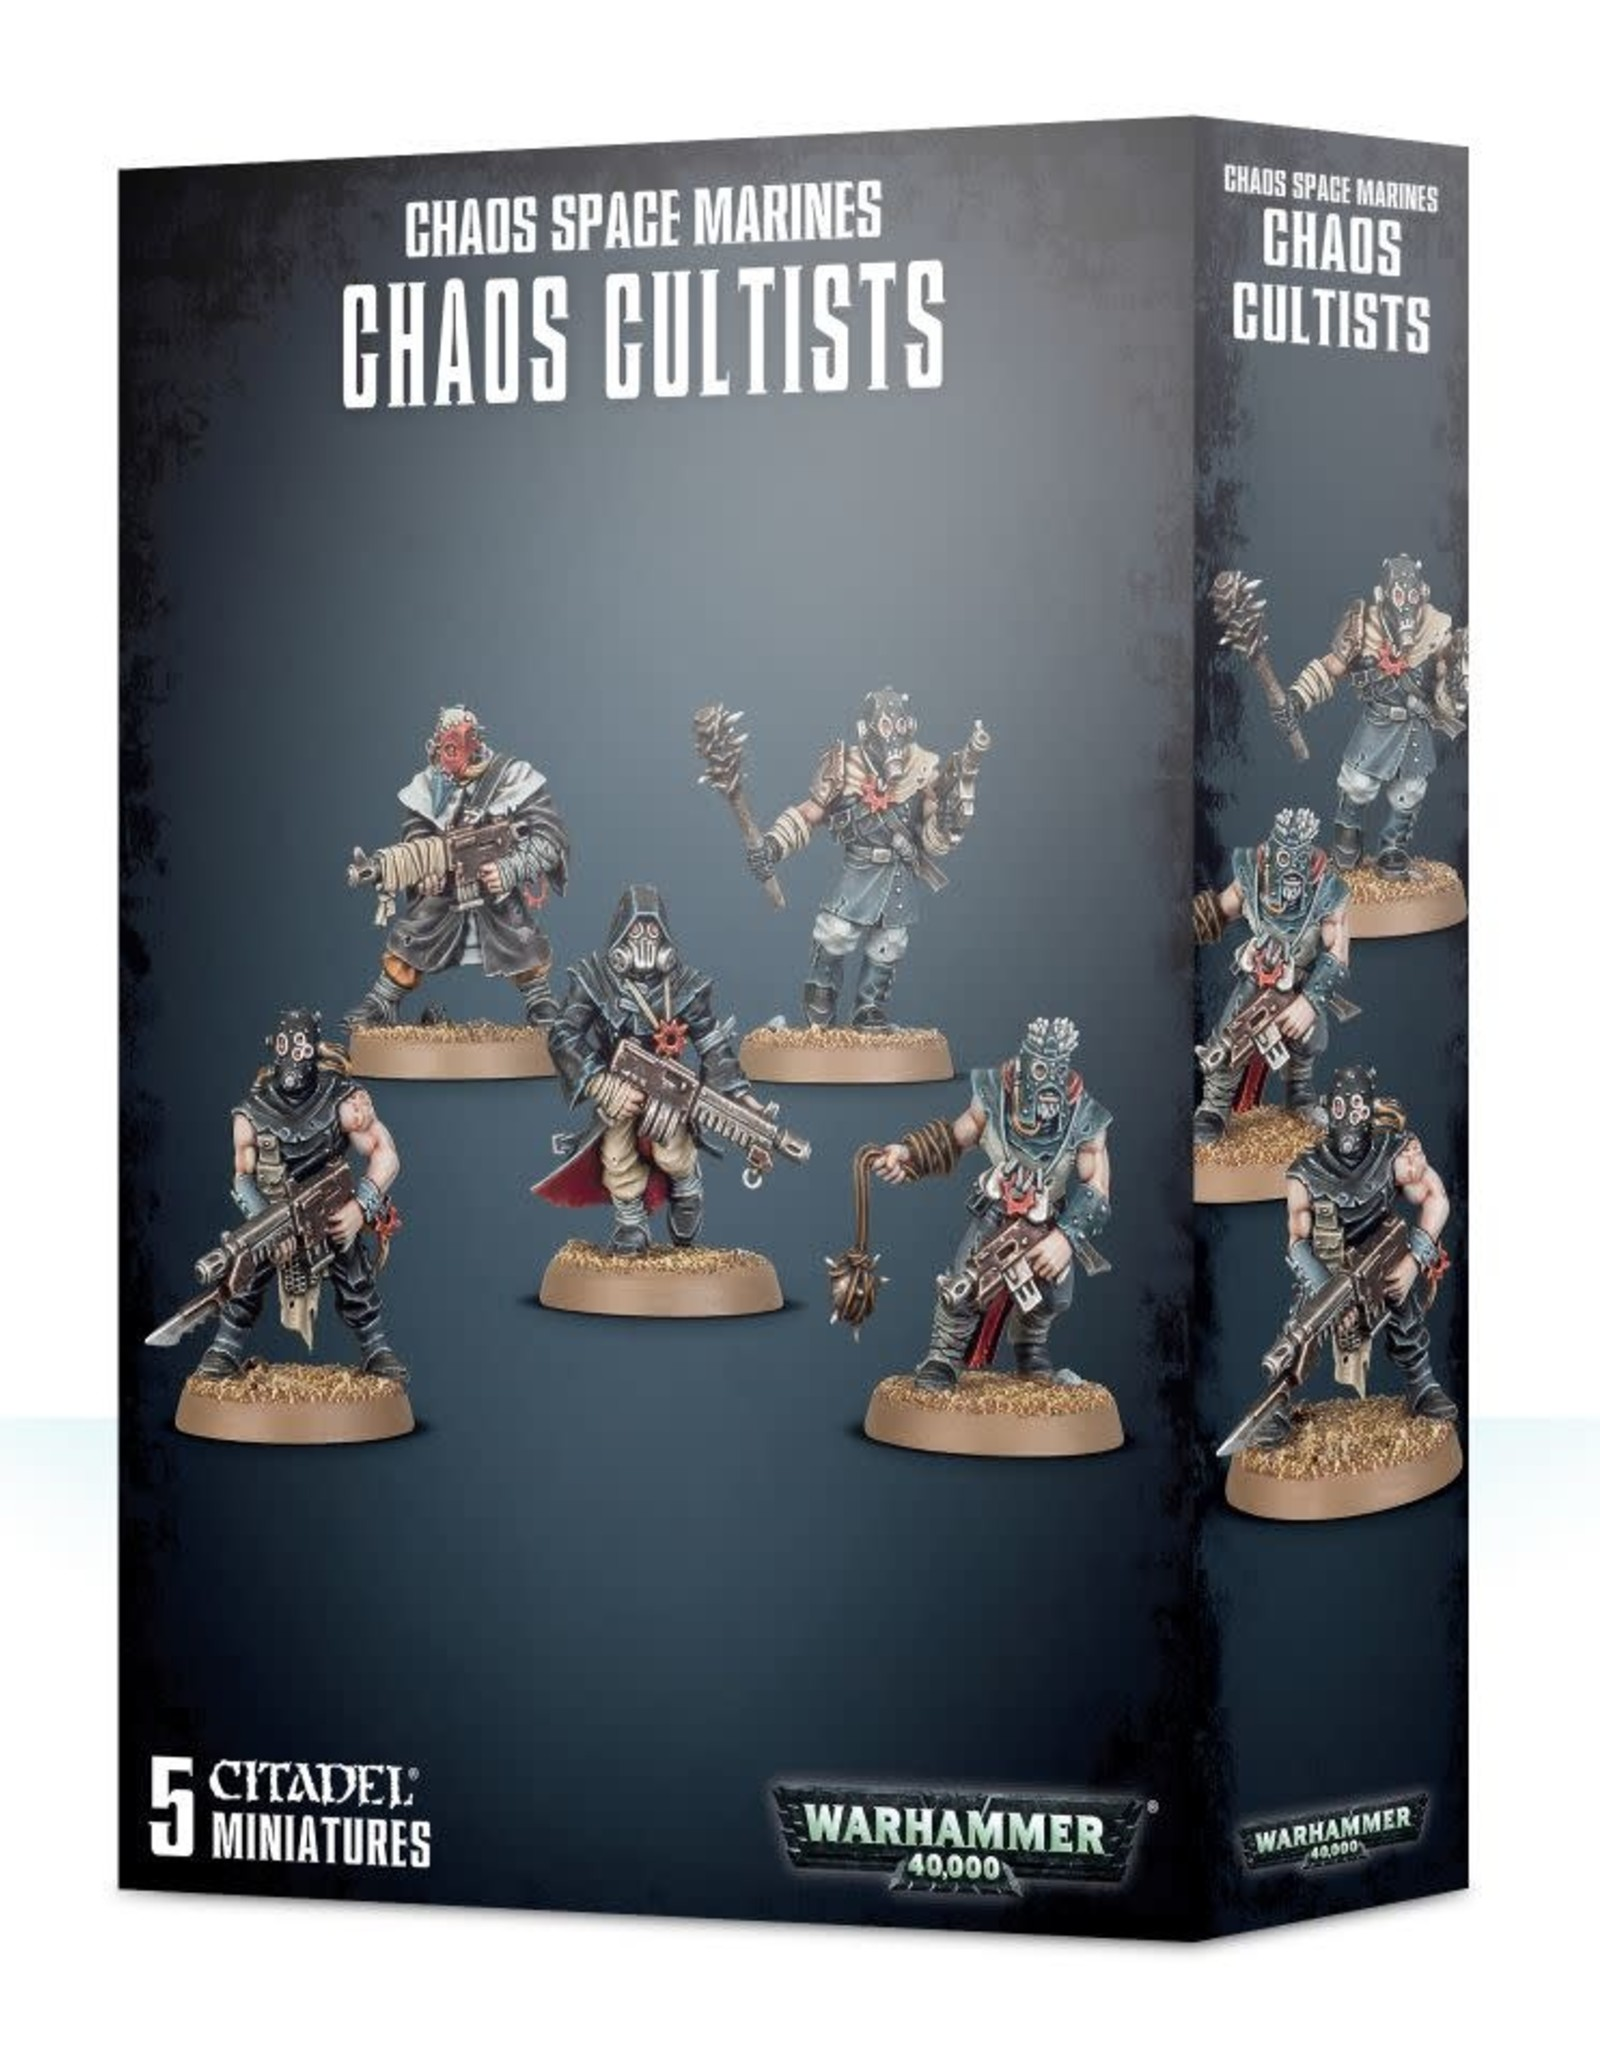 Warhammer 40K ETB: Chaos Space Marines Chaos Cultists